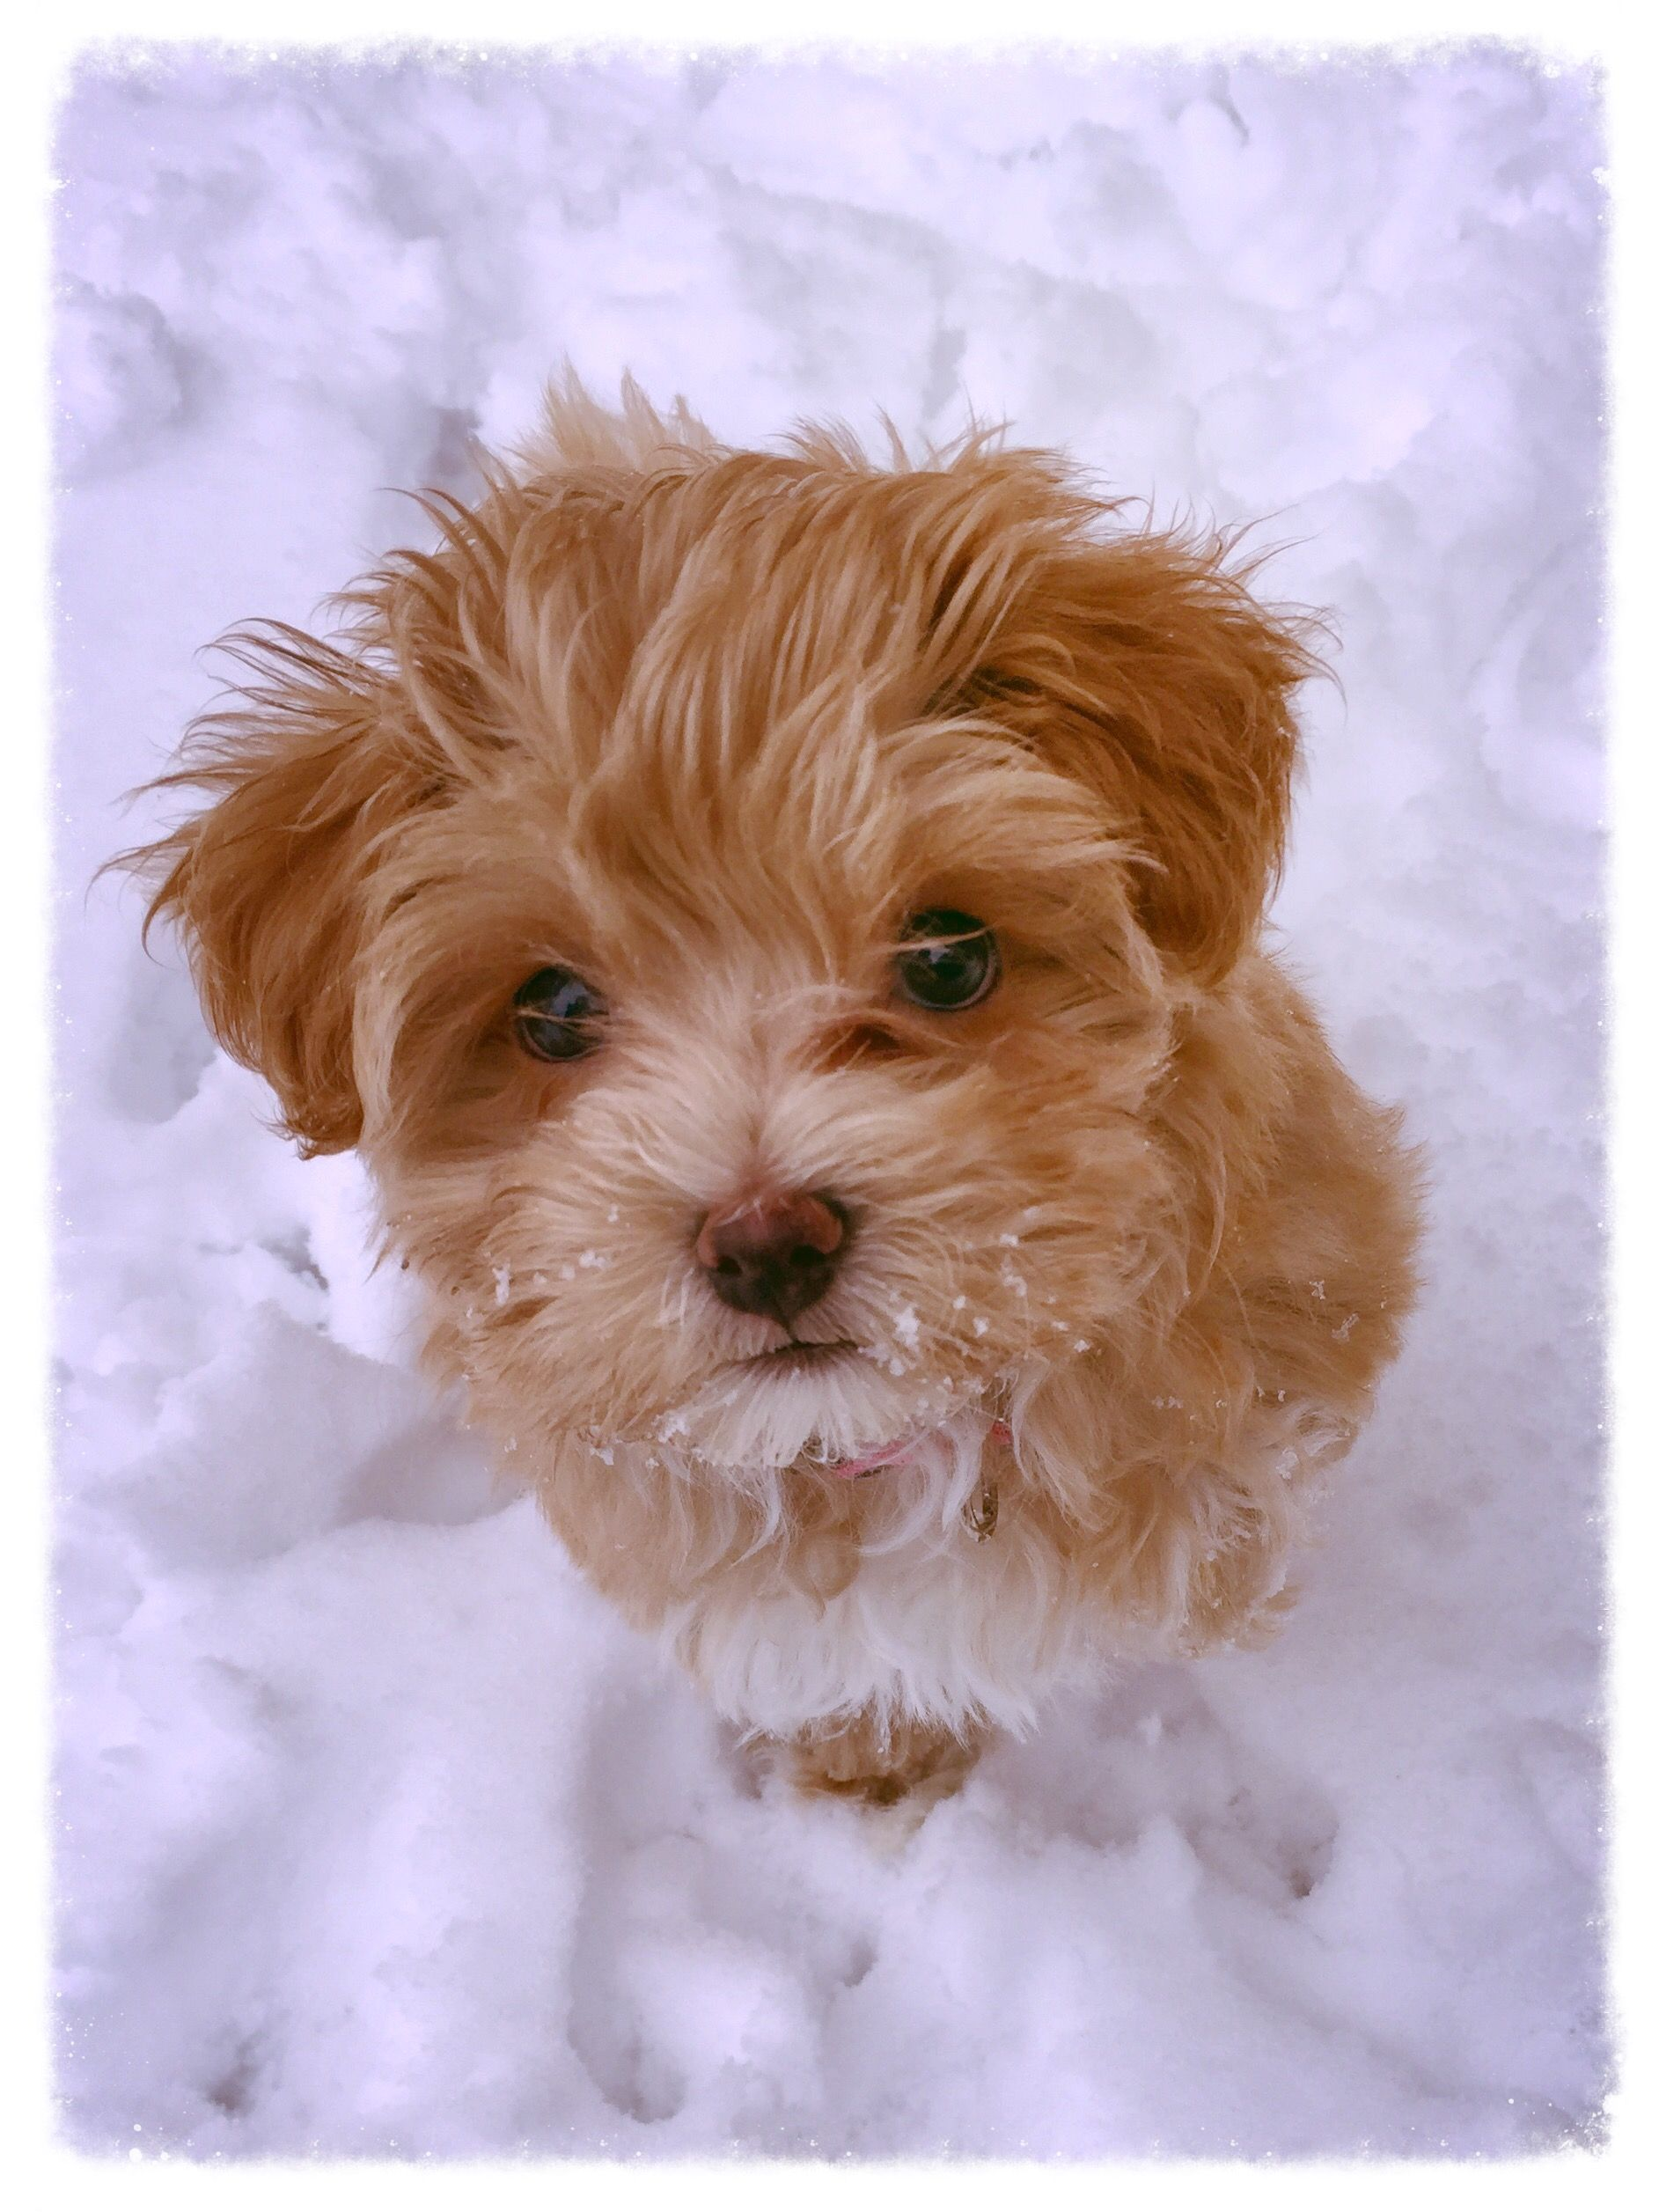 Havapoo Puppy | Havapoo puppies, Poodle mix dogs, Cute animals